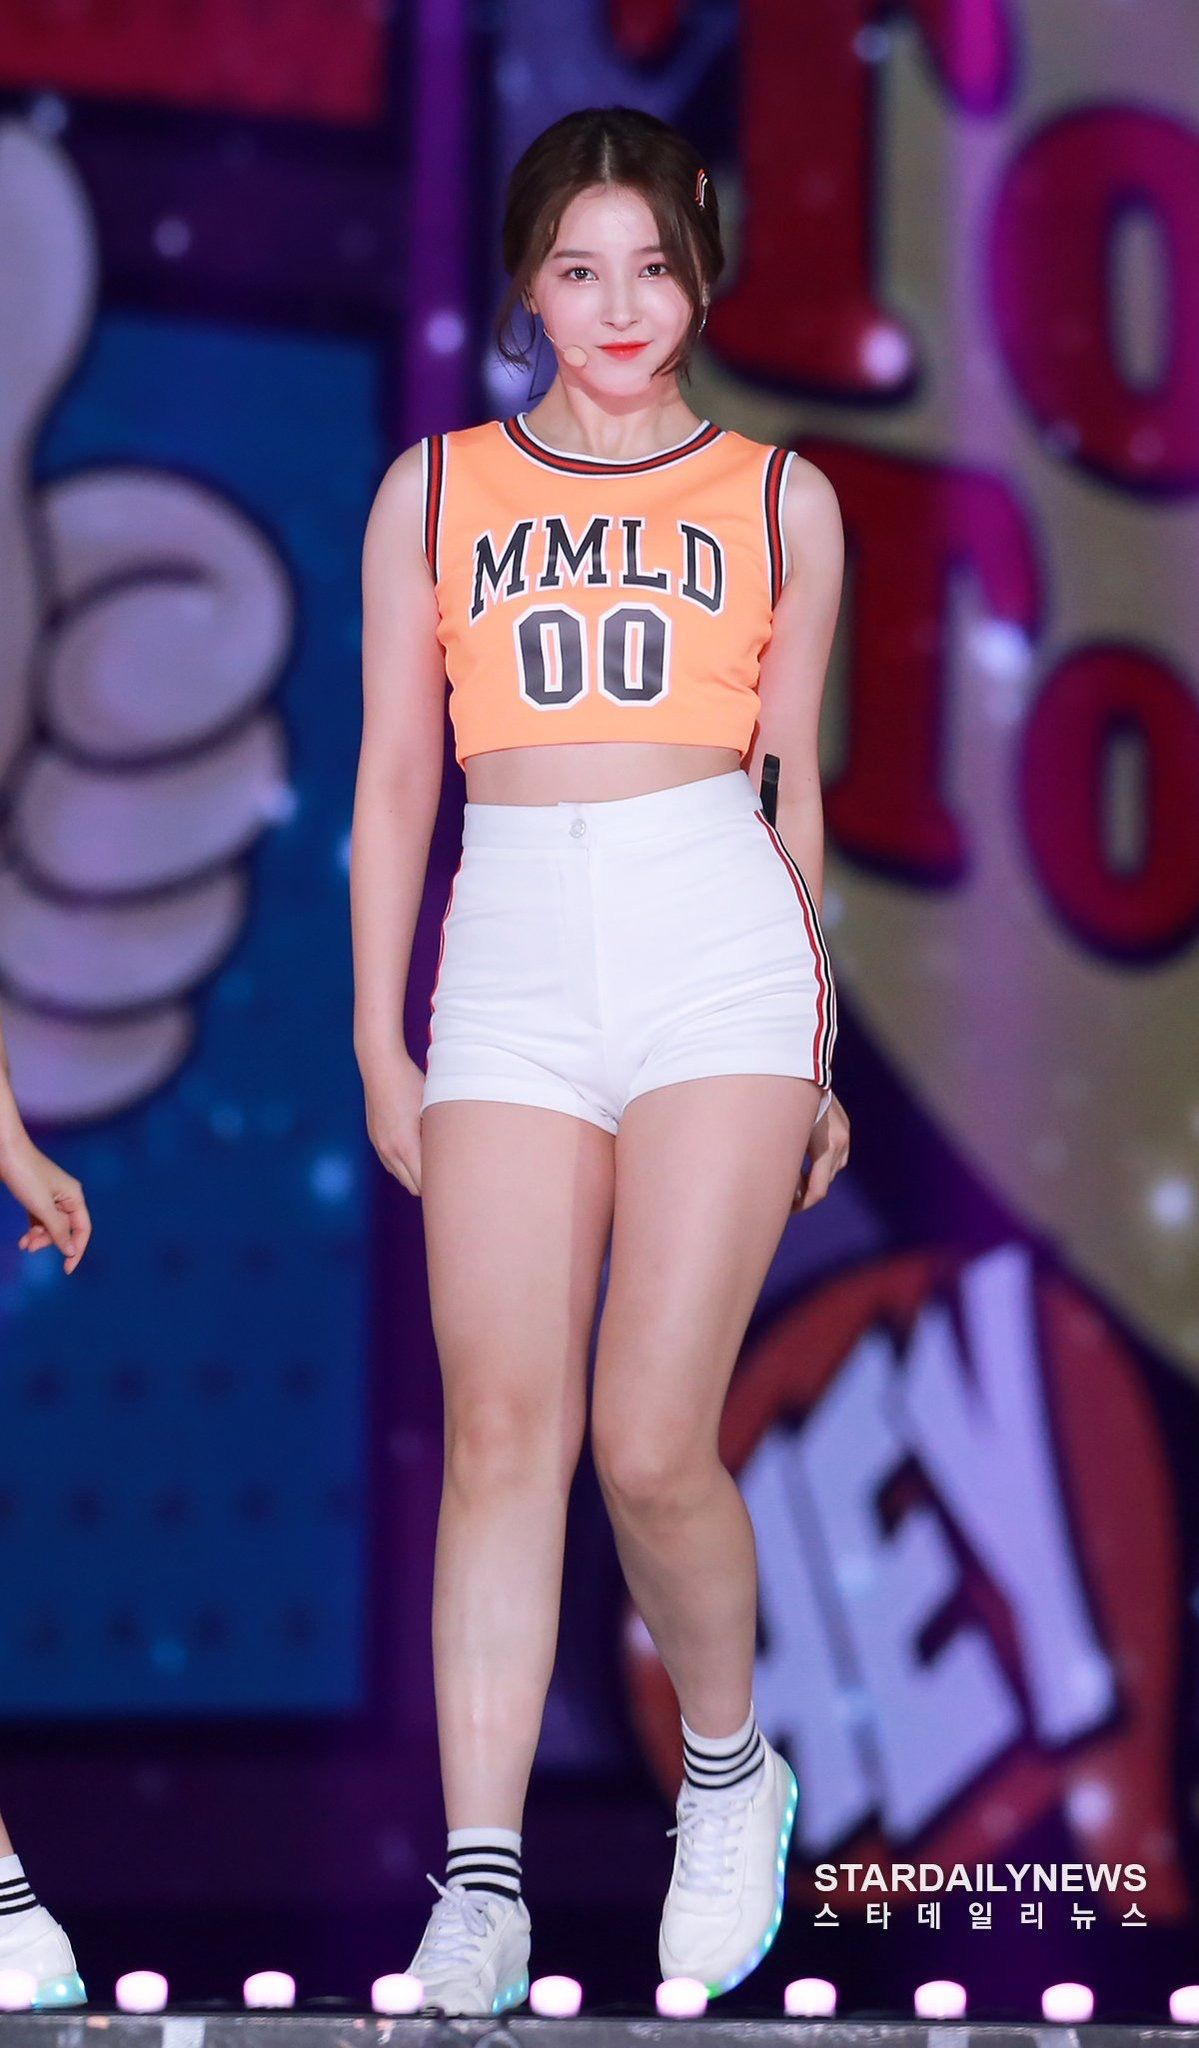 Which are the outfits that are worn by young idols that you think